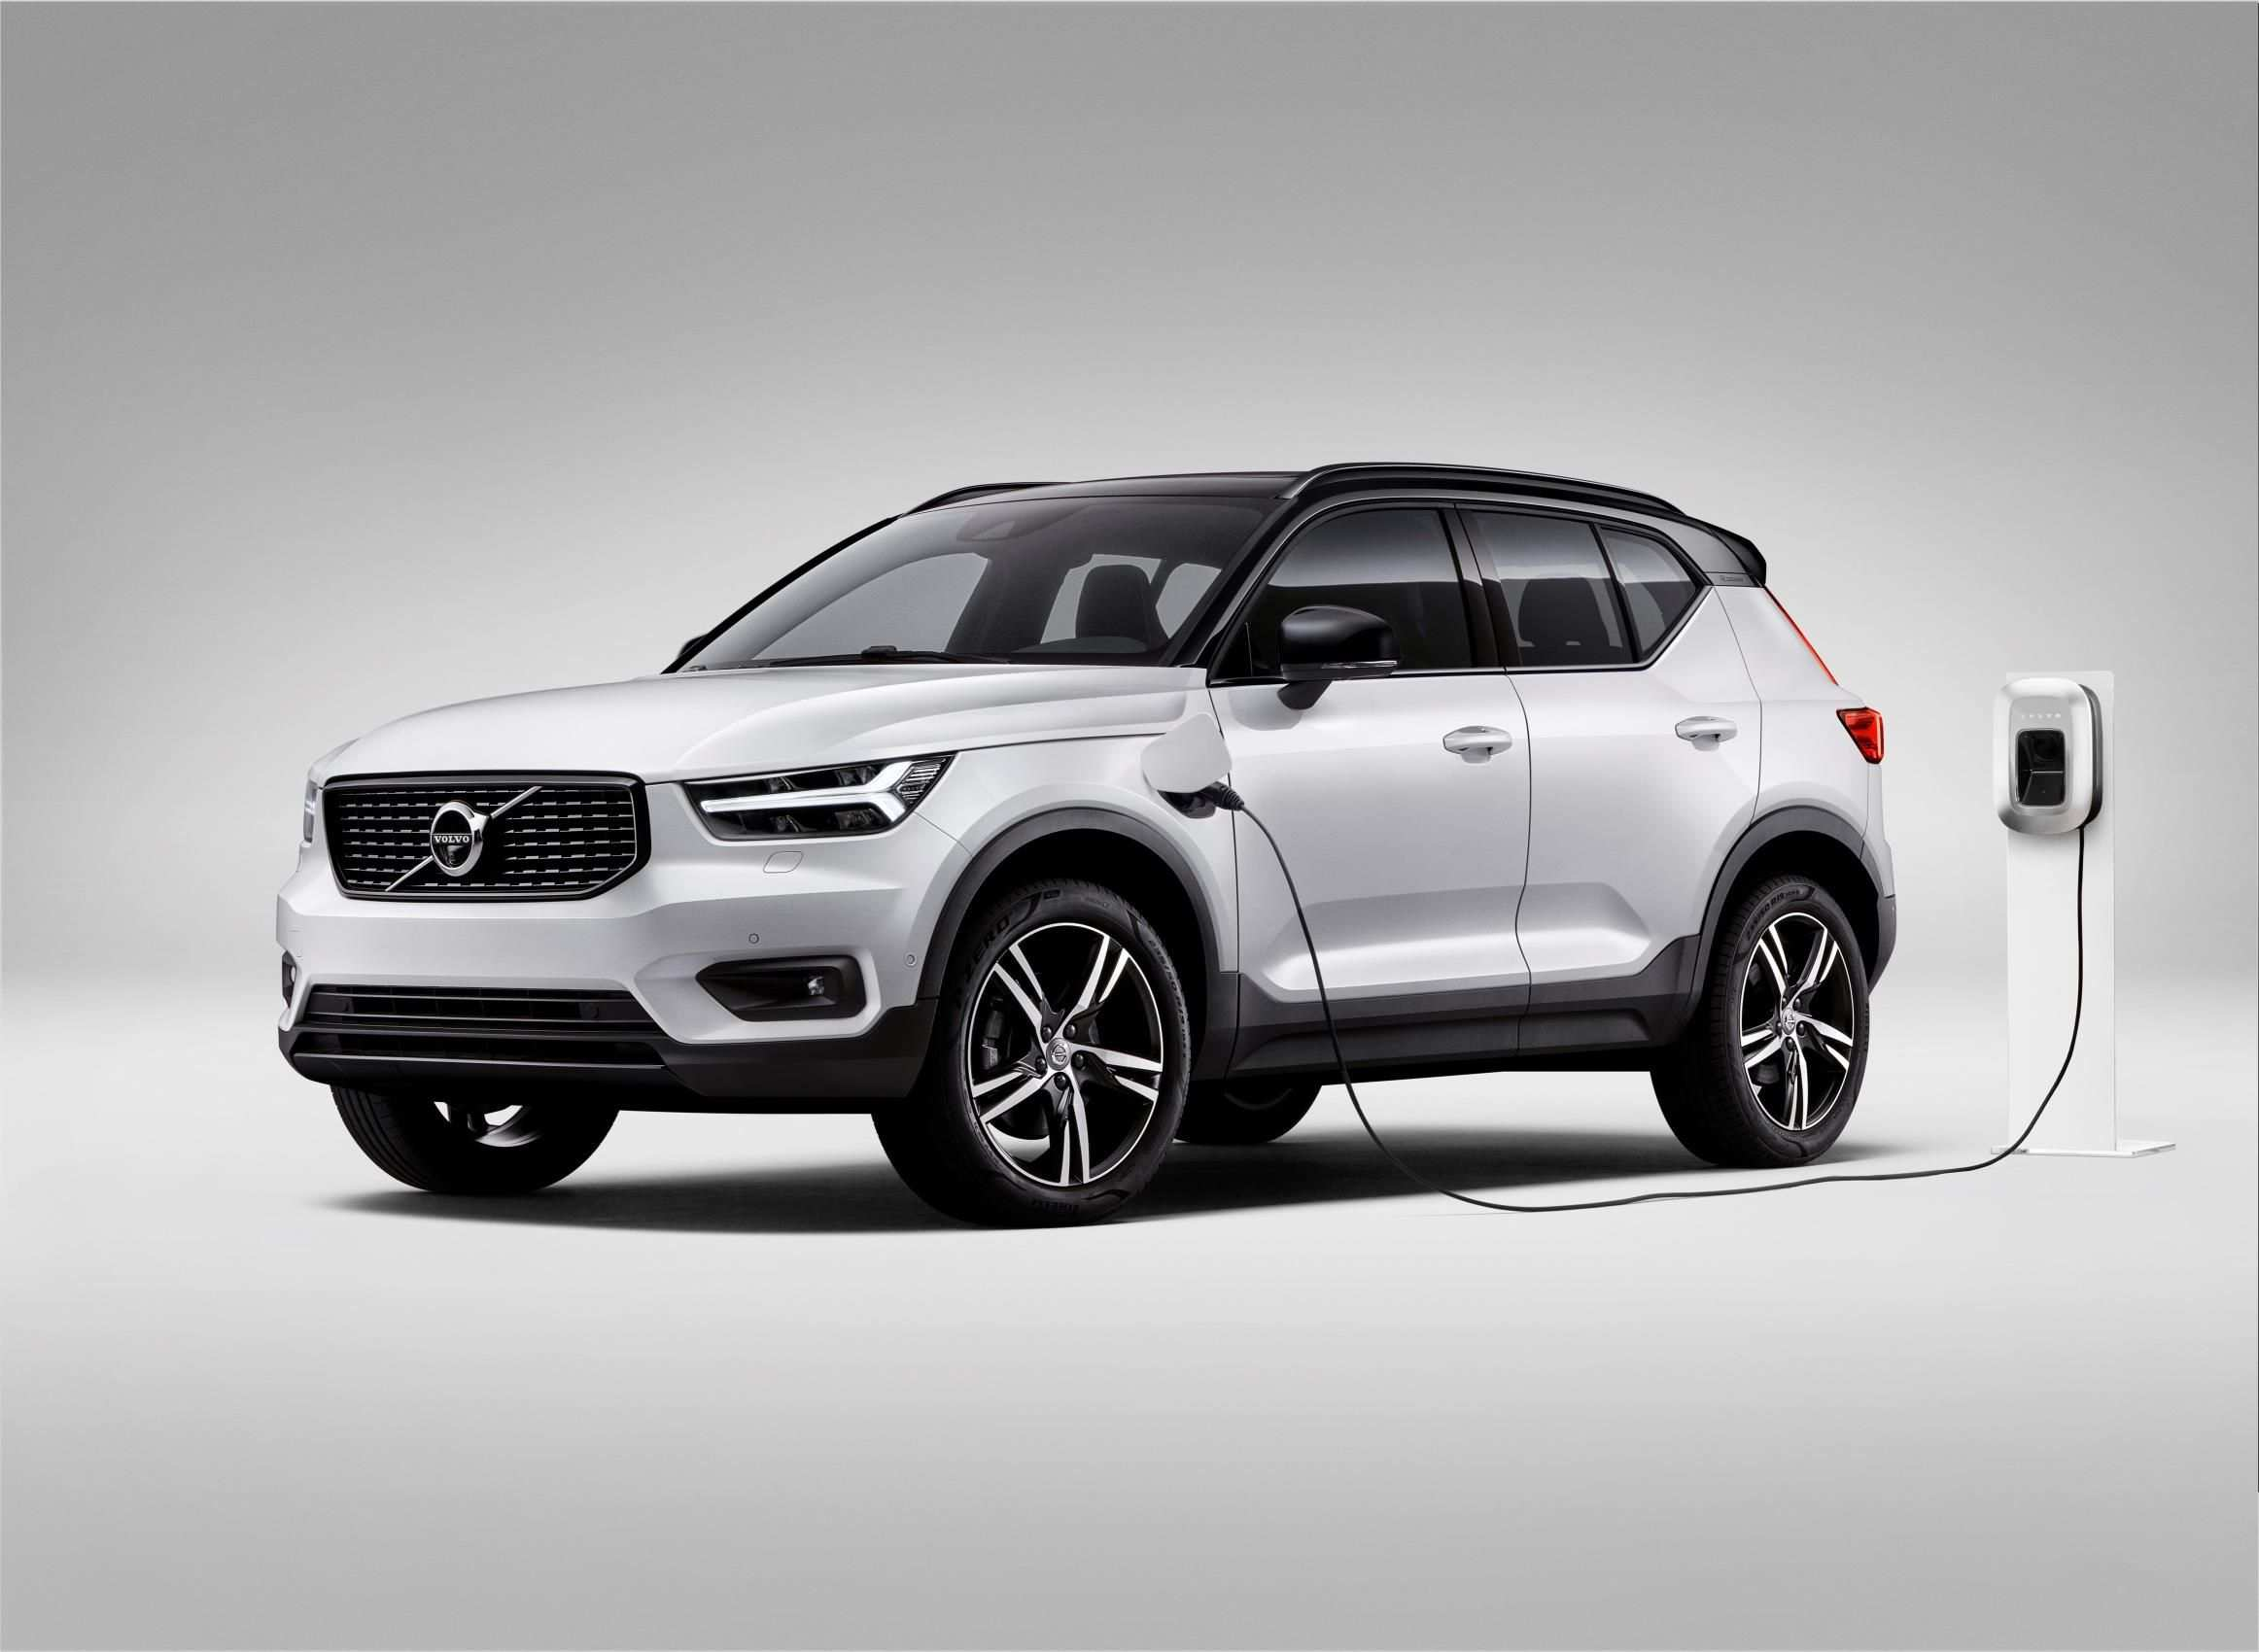 77 Great Volvo Xc40 Dimensions 2020 Photos by Volvo Xc40 Dimensions 2020